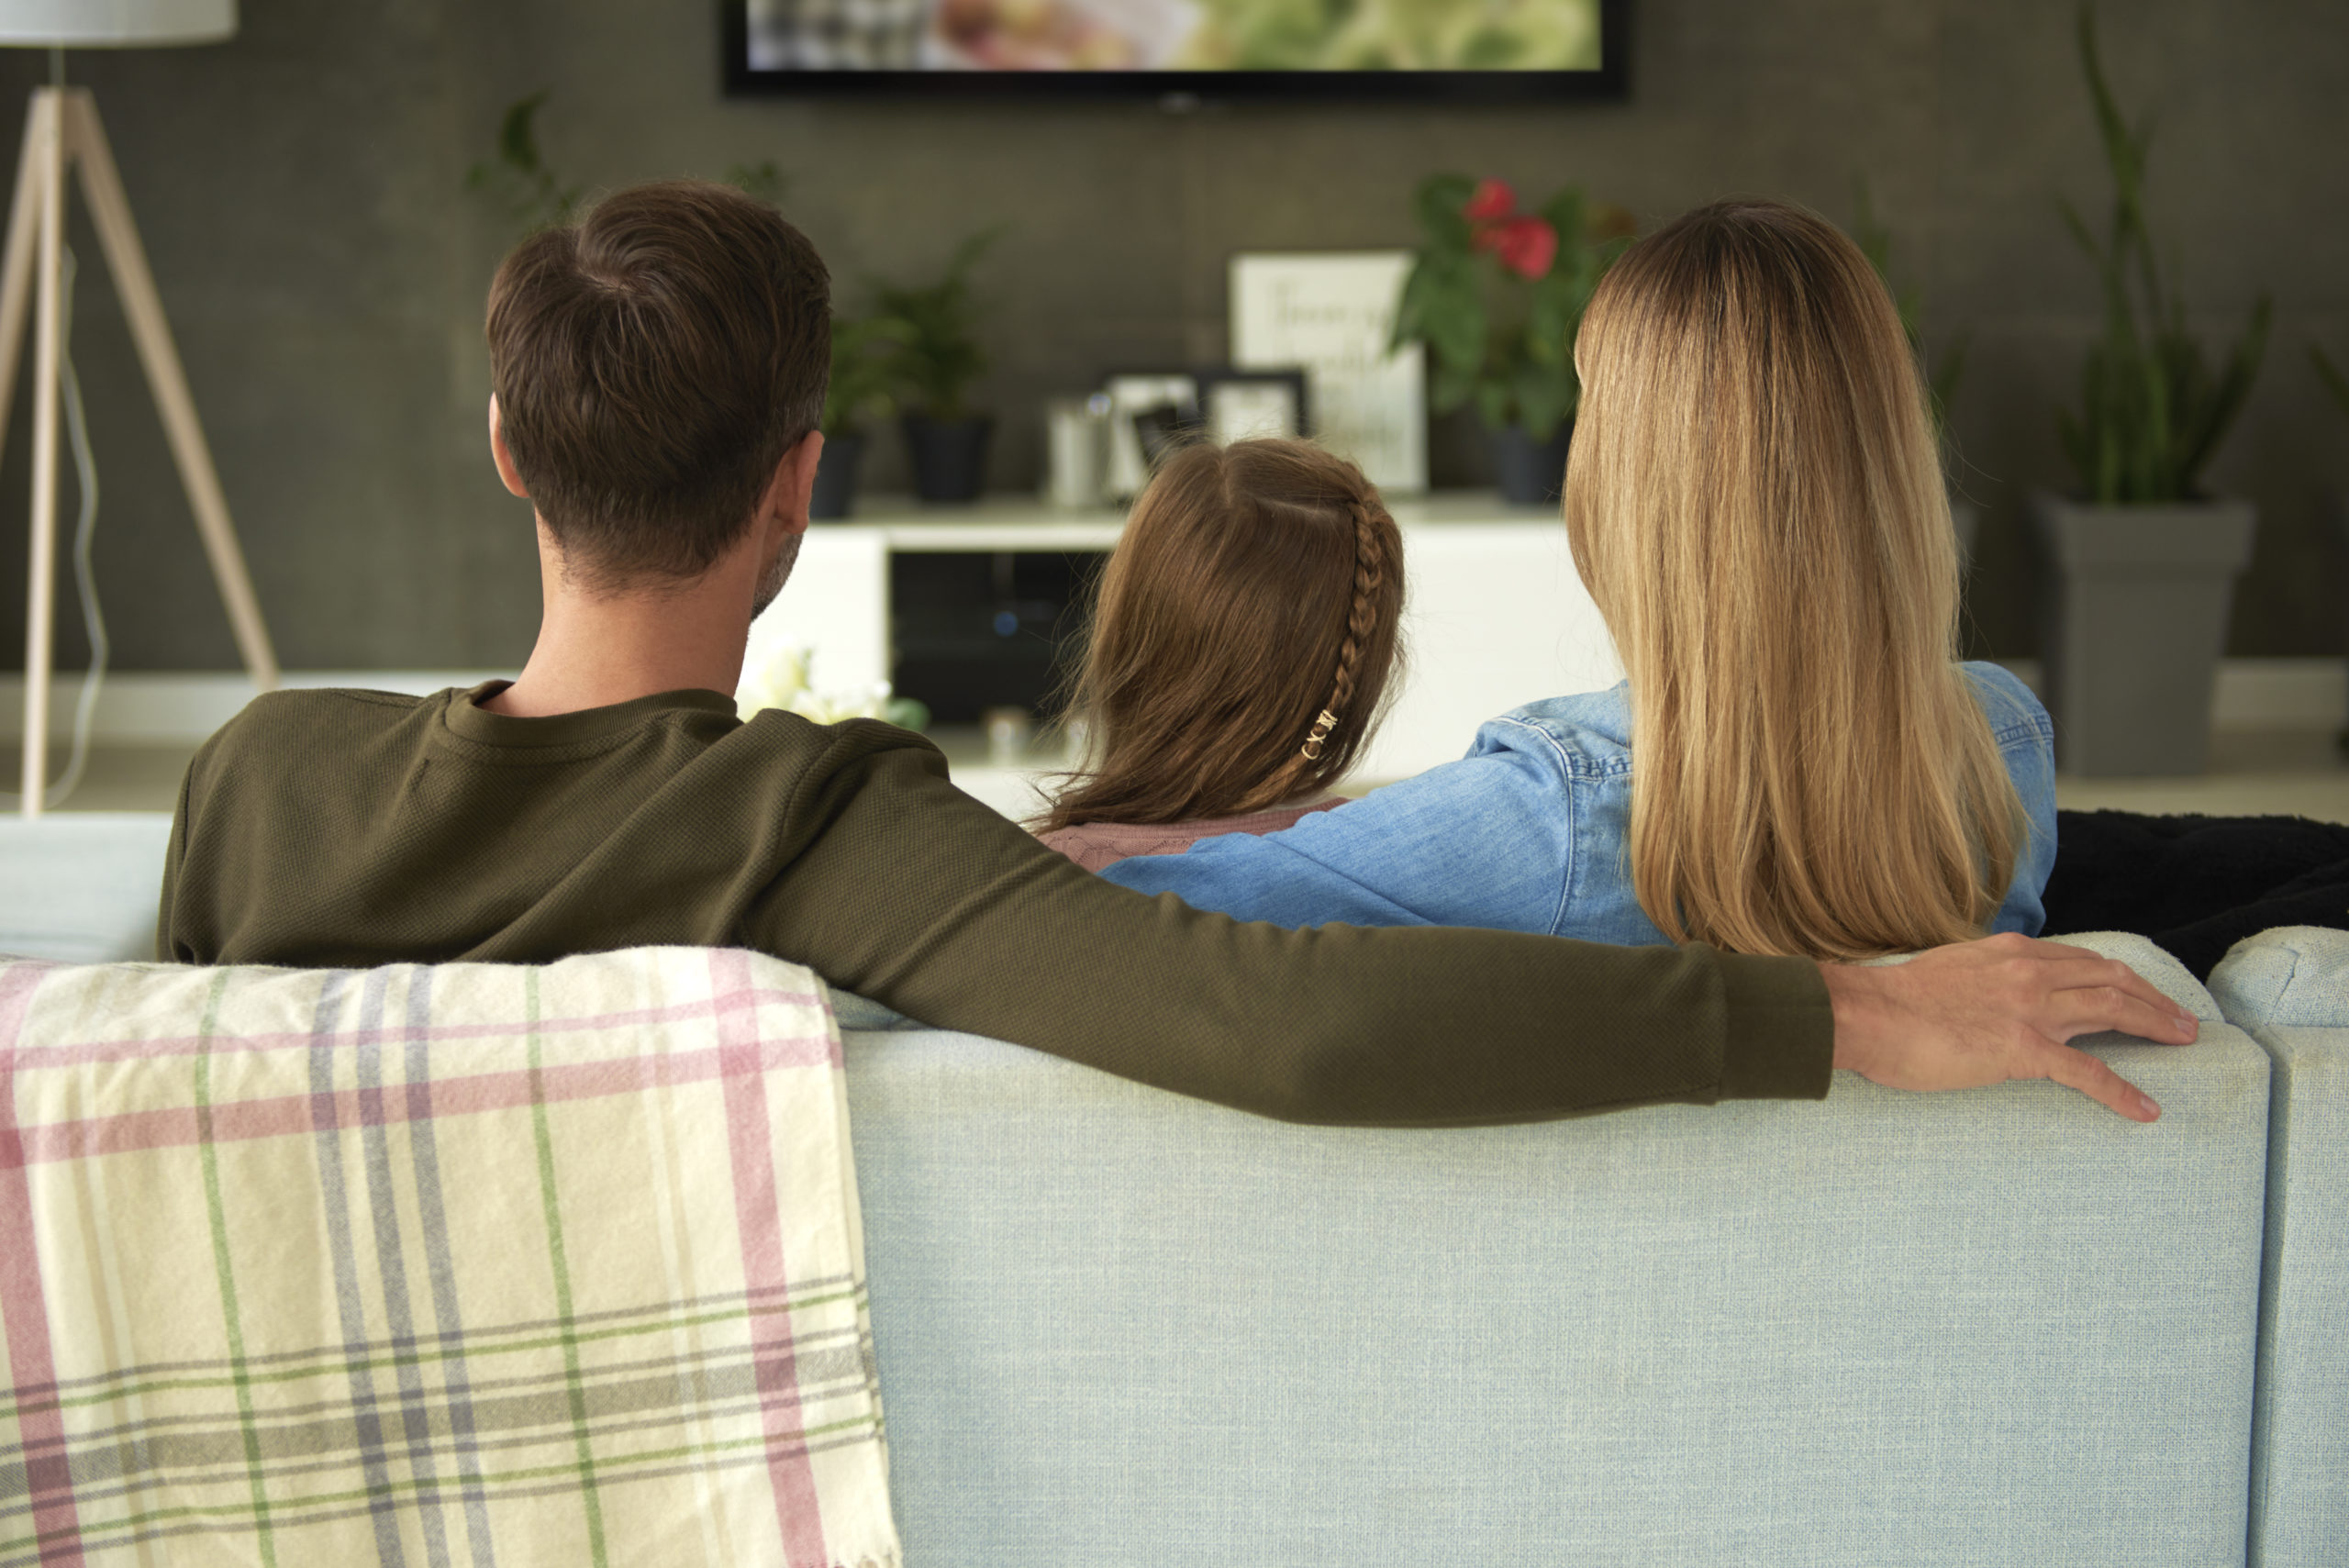 Disney Plus Chromecast buffering https://elements.envato.com/rear-view-of-family-with-one-child-watching-tv-6RAEP4S